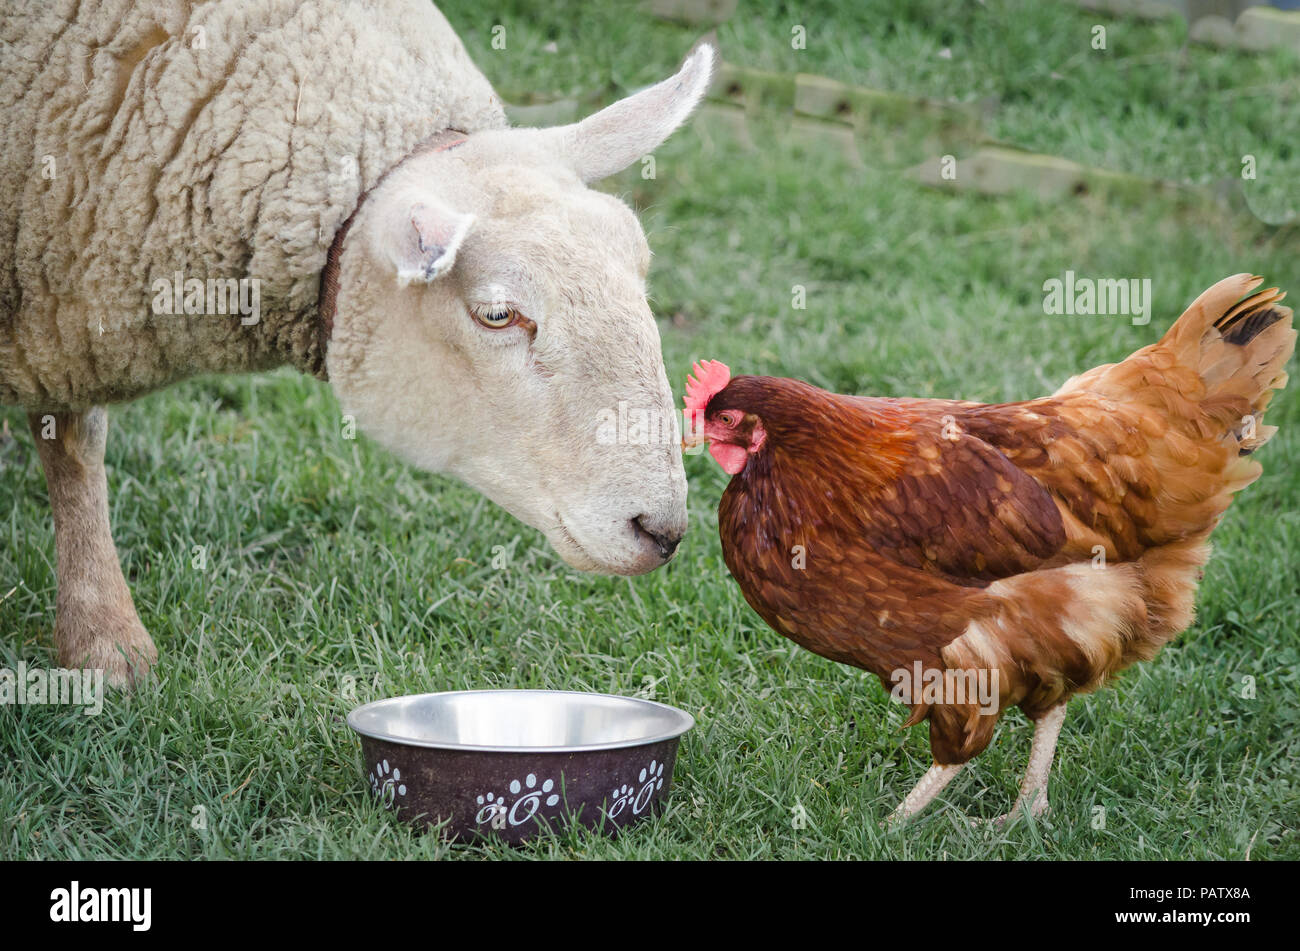 Sheep and chicken friends - Stock Image